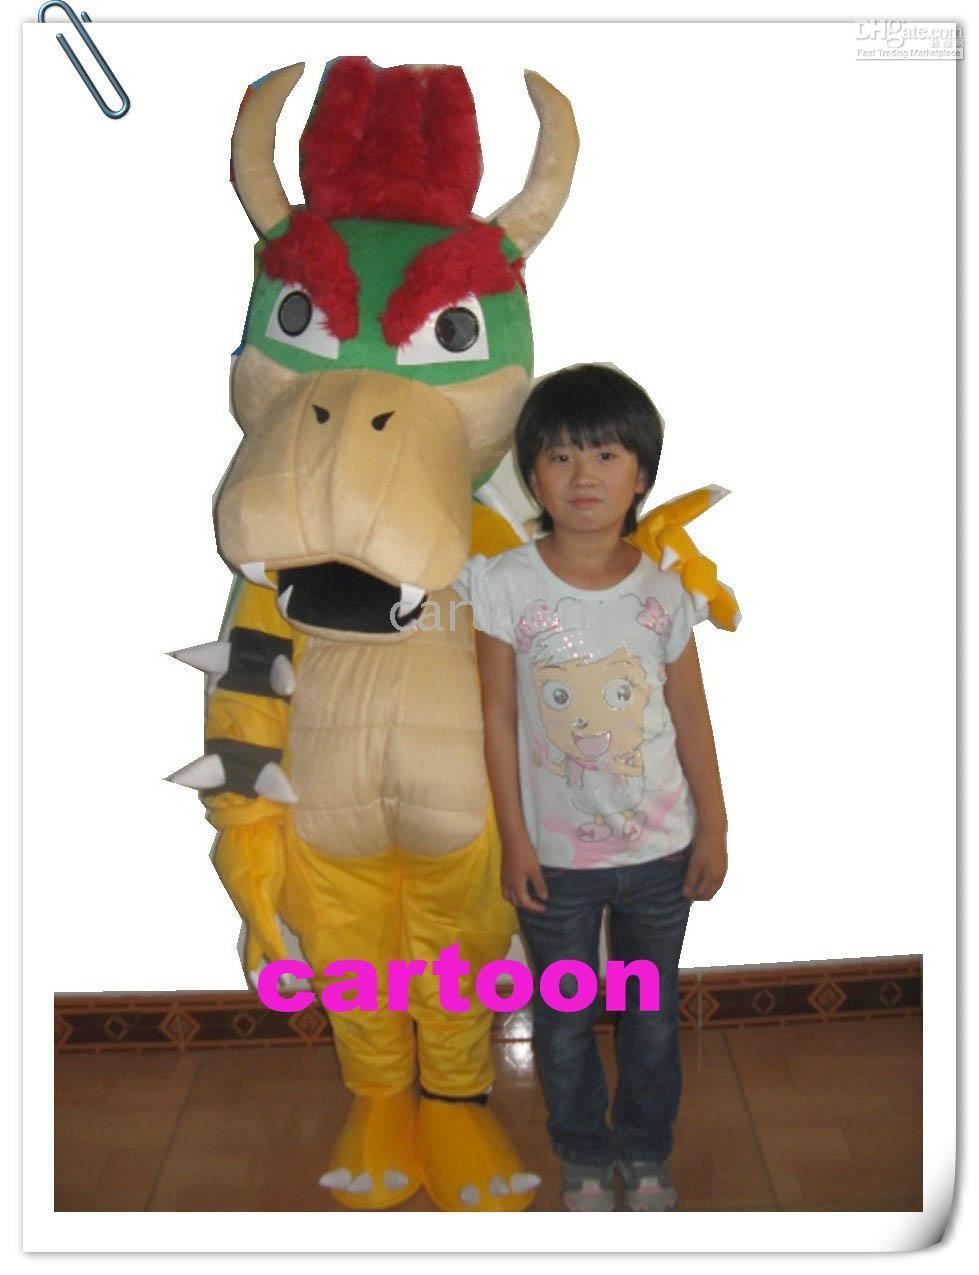 Super Mario Bros King Bowser Mascot Costume Child Size Sheep Costume Infant Costumes From Cartoon $226.02| Dhgate.Com  sc 1 st  DHgate.com & Super Mario Bros King Bowser Mascot Costume Child Size Sheep Costume ...